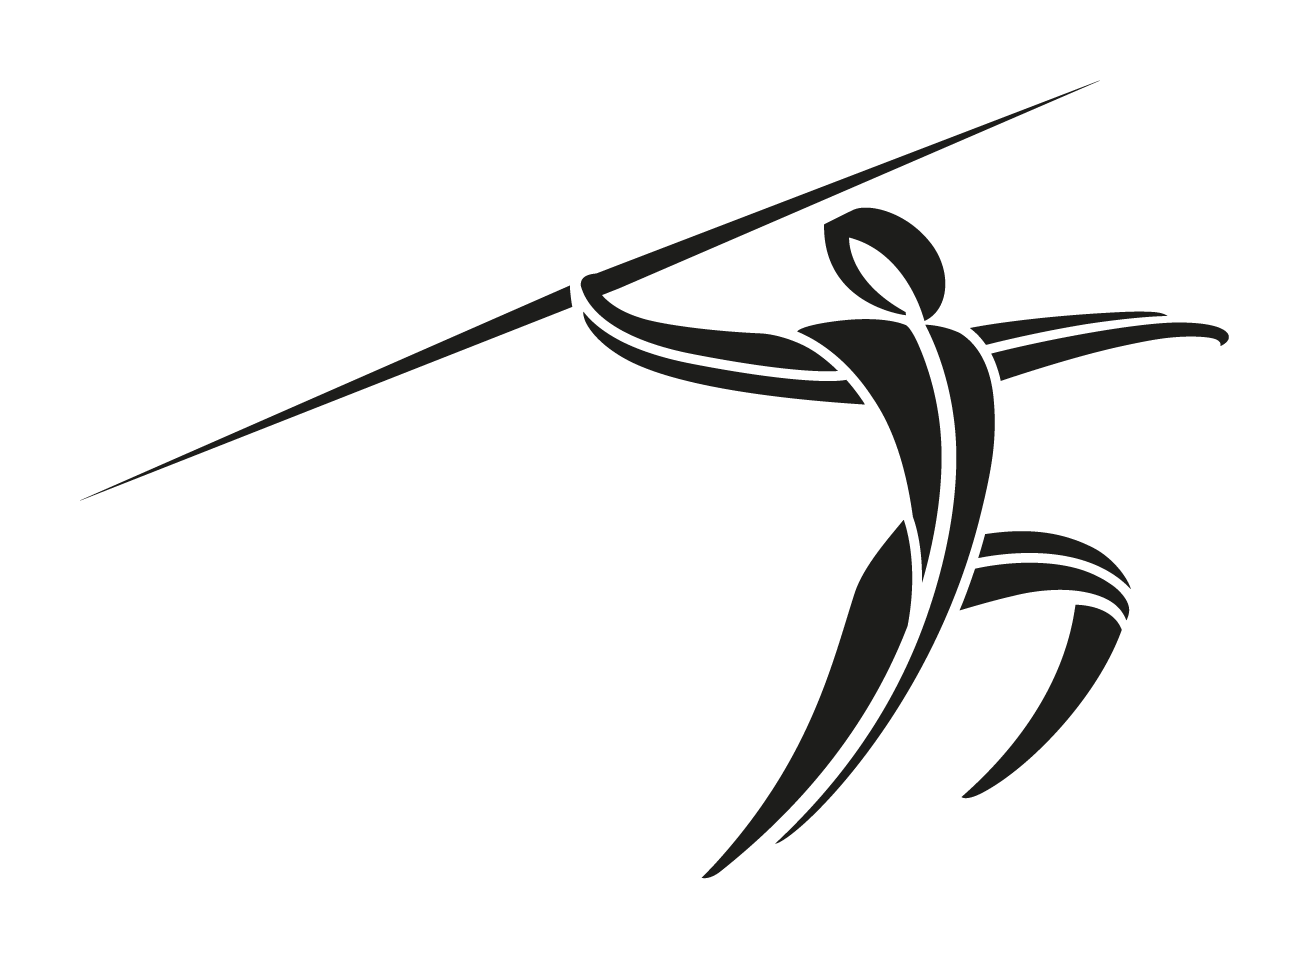 Pole vault clipart images svg transparent library Pole Vault Drawing at GetDrawings.com   Free for personal use Pole ... svg transparent library